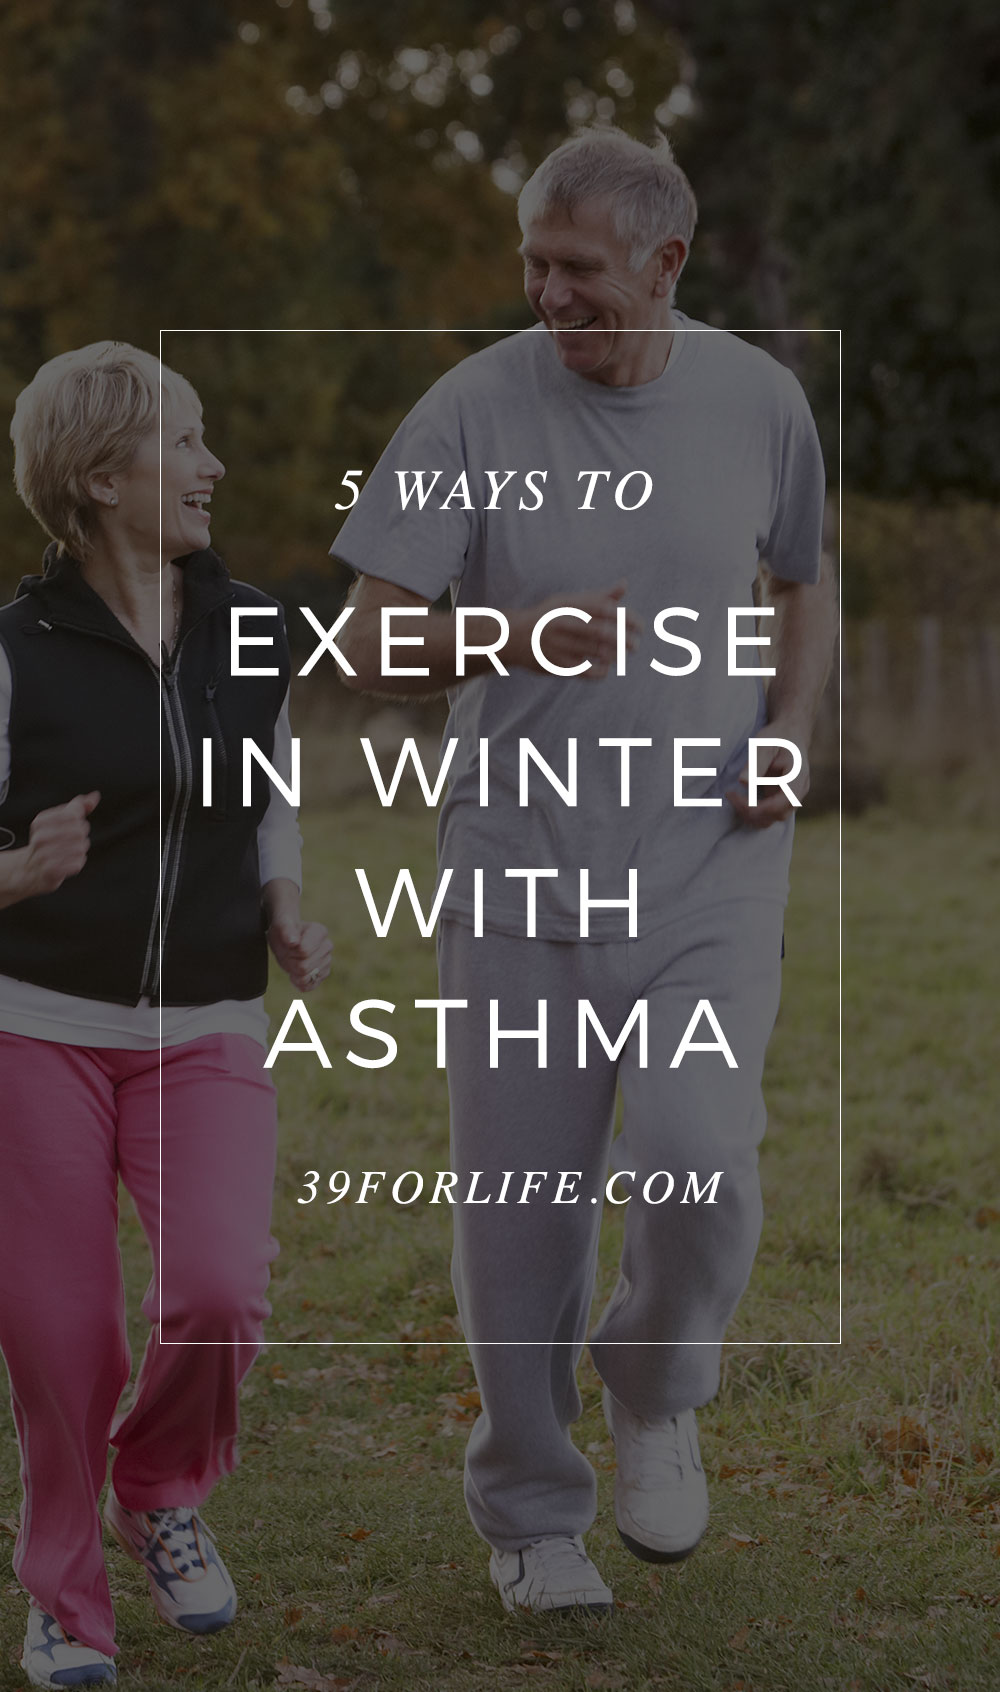 Cold, dry air is dangerous when you have asthma. Here's how to get out and exercise without triggering an attack.